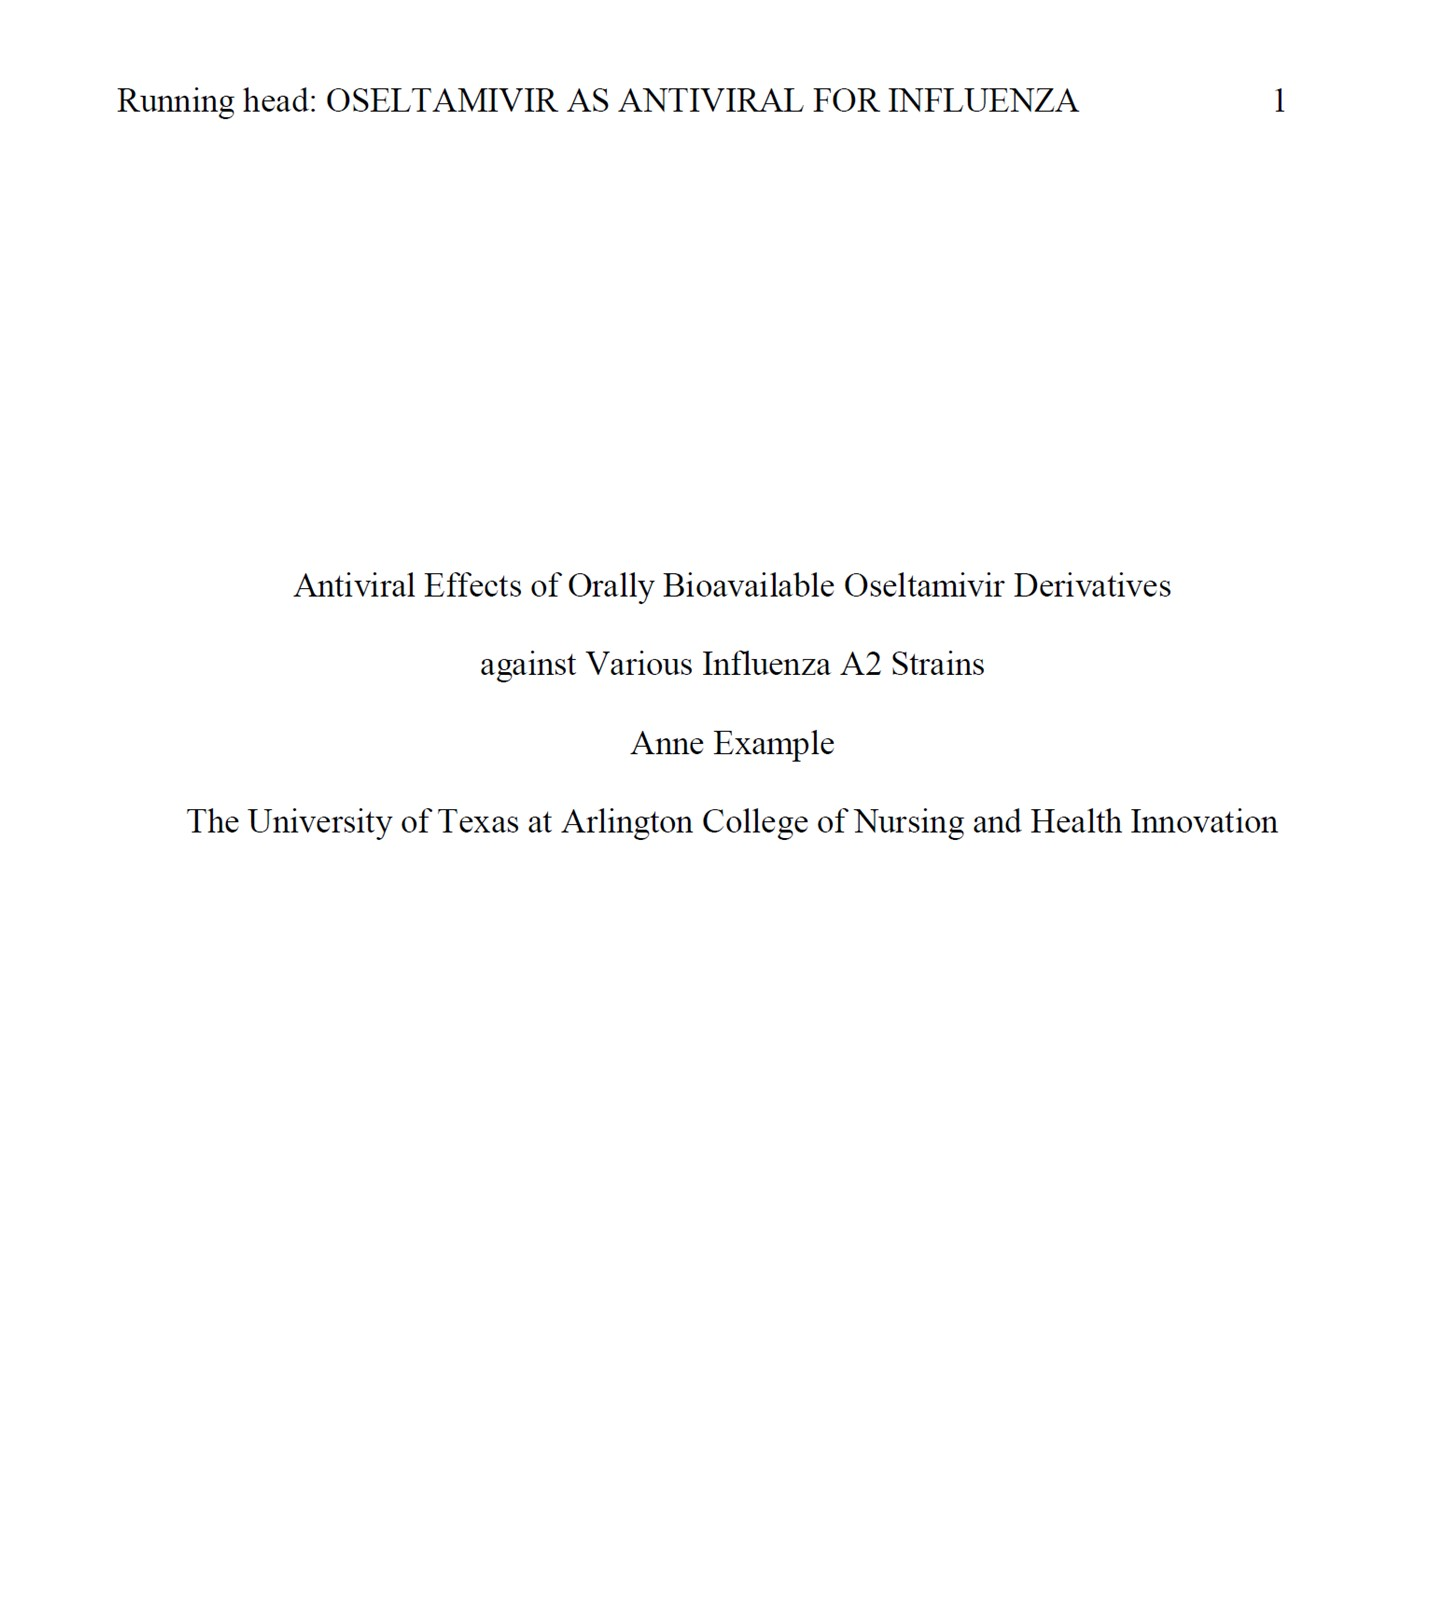 008 Presentation1 Research Paper Apa 6th Edition Exceptional Headings Full